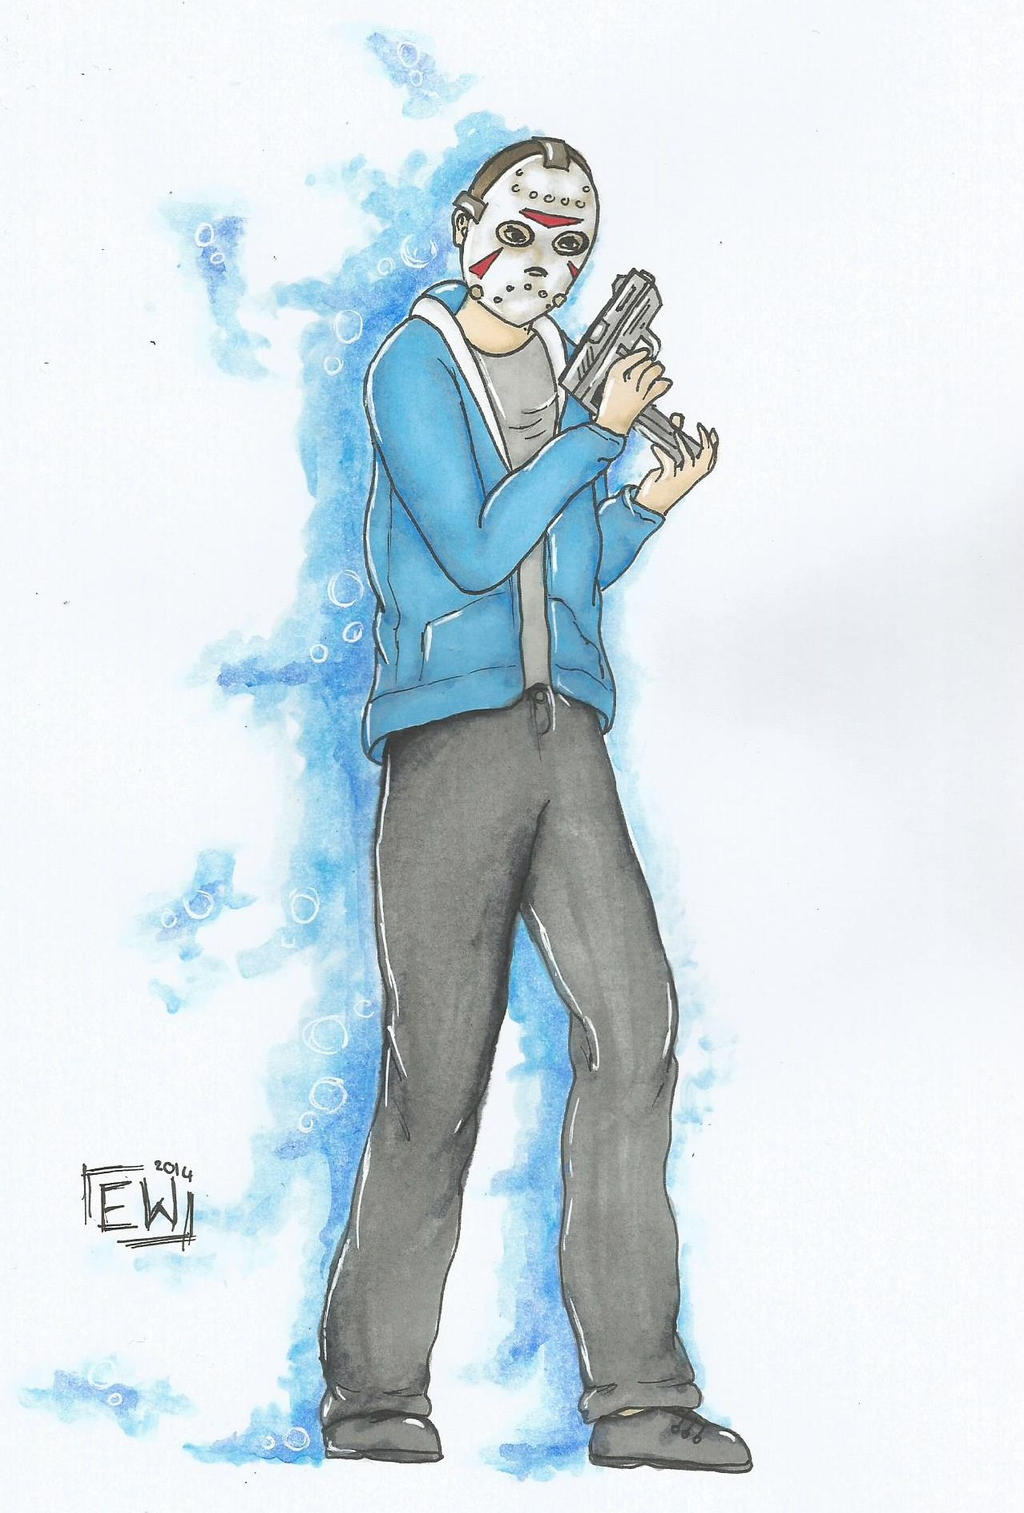 H20 Delirious by fleurescience on DeviantArt H20 Delirious Fan Art